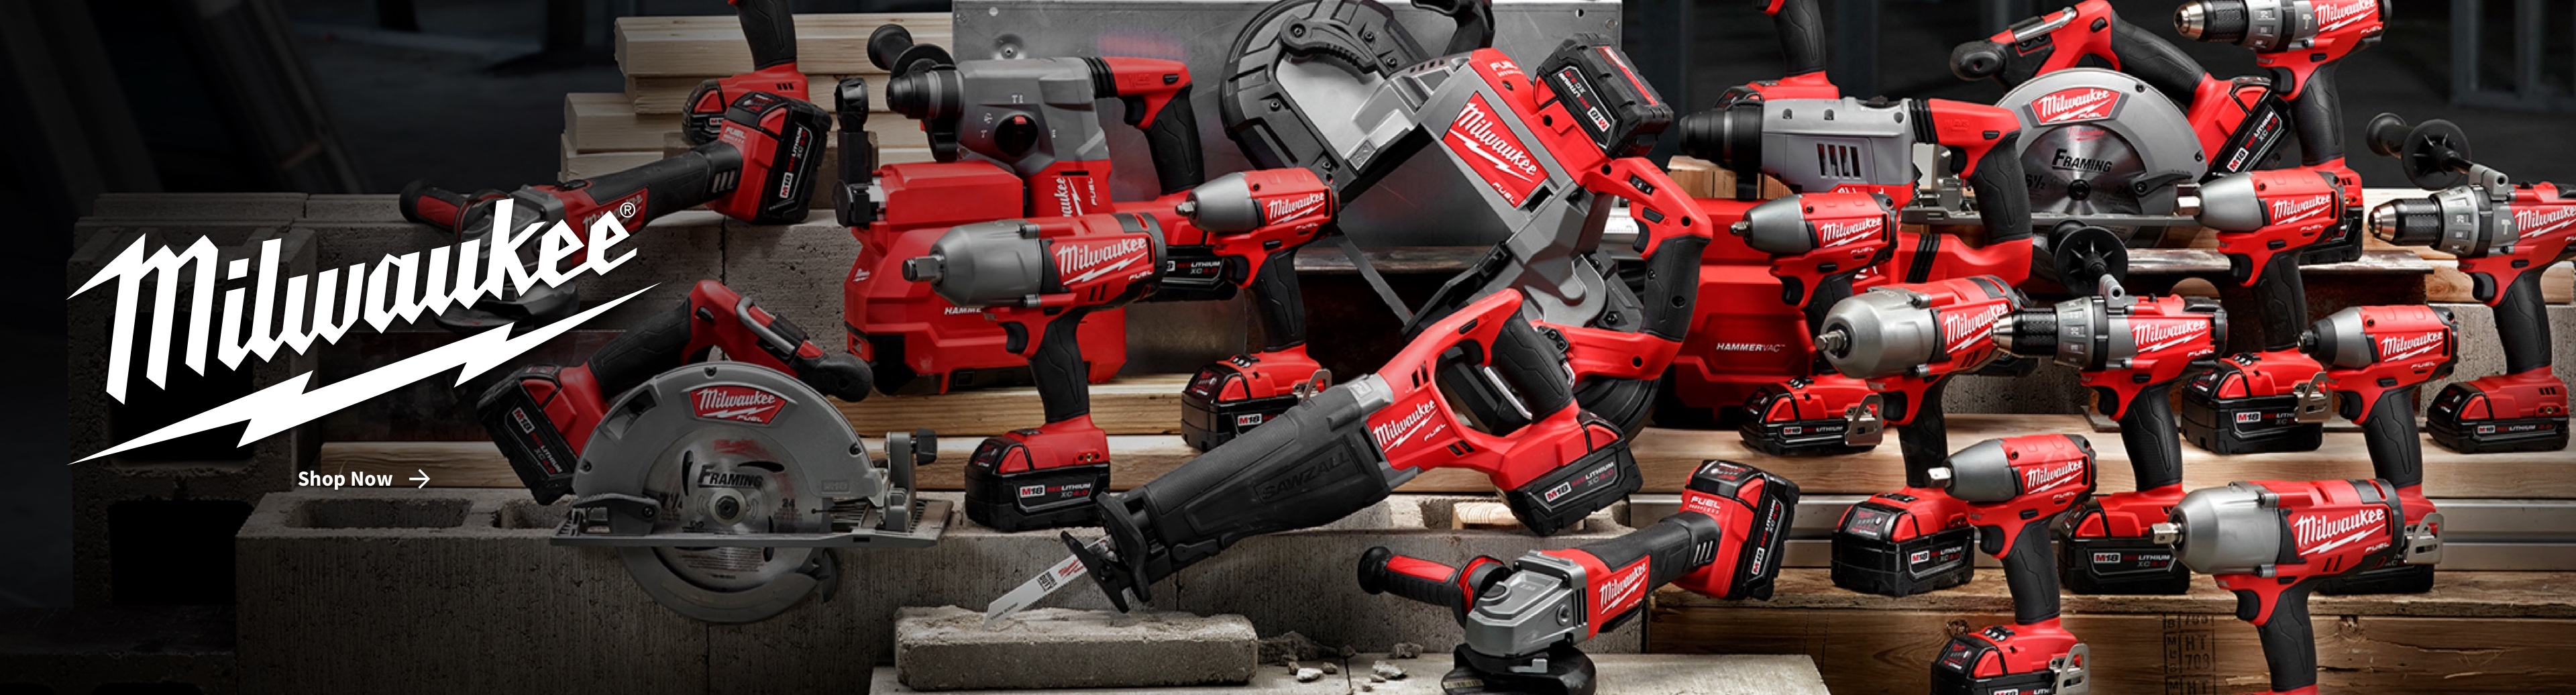 Shop Milwaukee power tools from Powers' Hardware